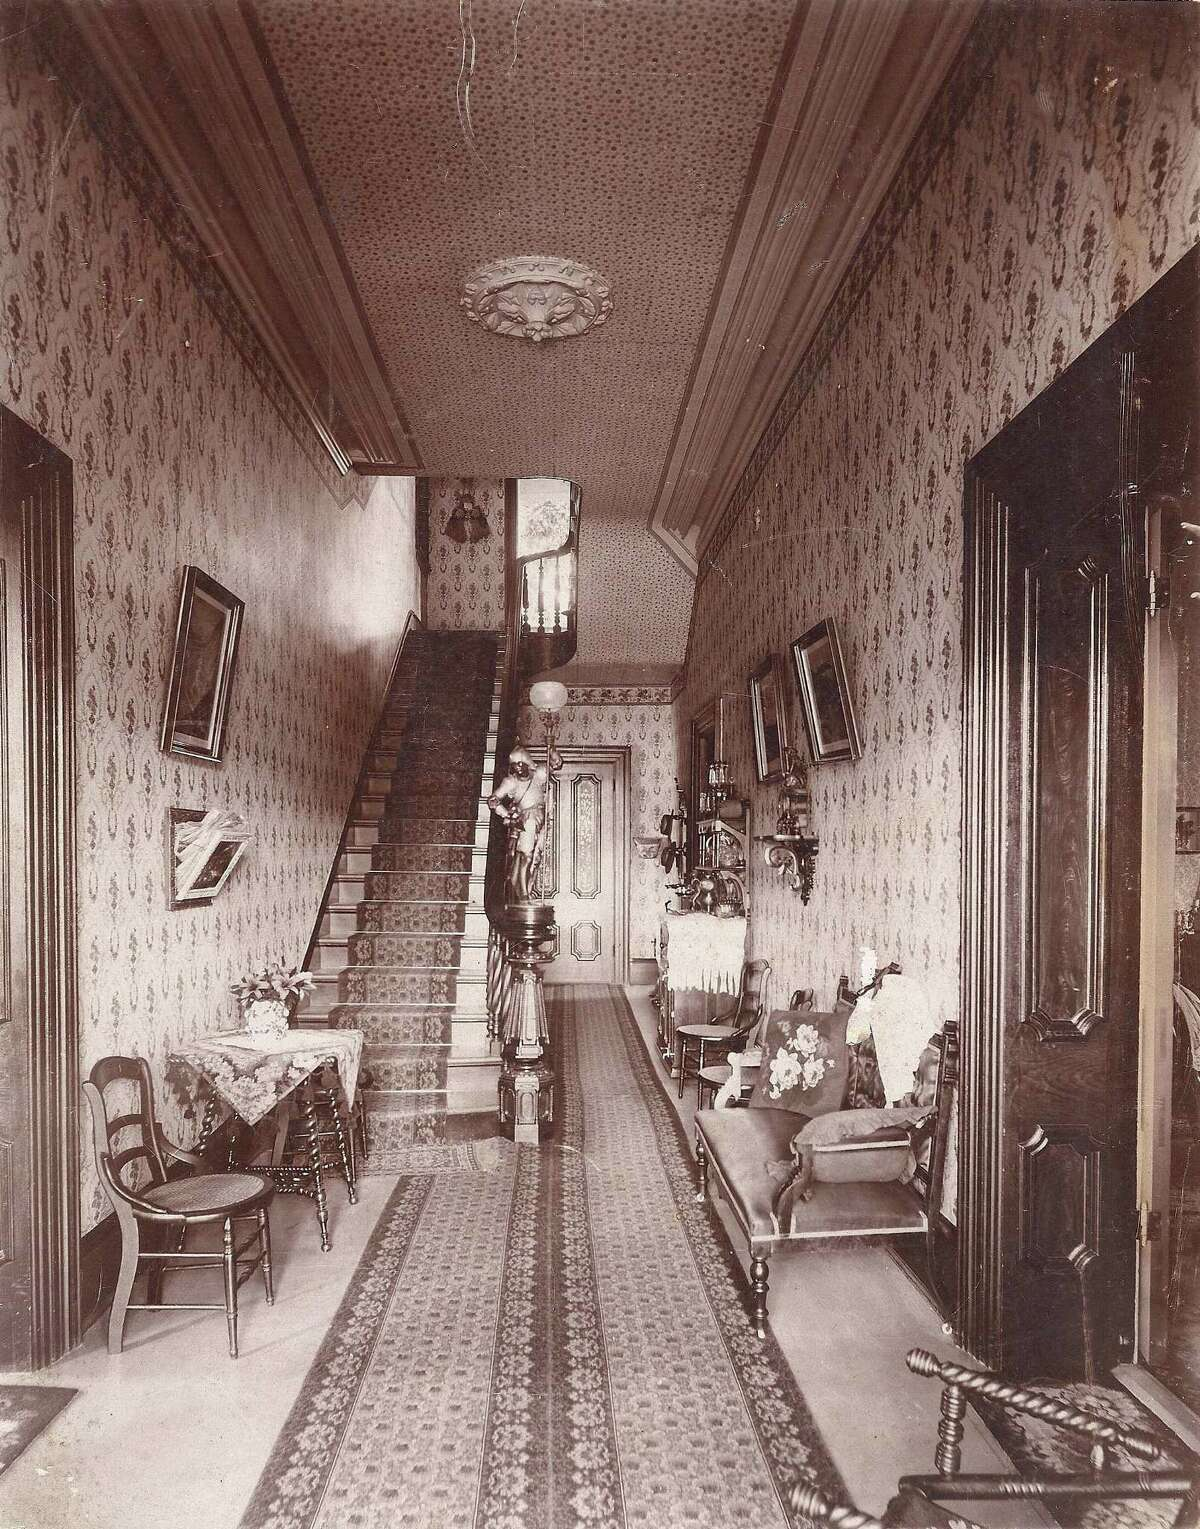 The entrance hall and stairway of the Steves Homestead in 1898. Visible is a carved stairway endpost, chairs, a settee and credenza and picture frames on the wall. Black and white. Please credit: Restricted Collection,